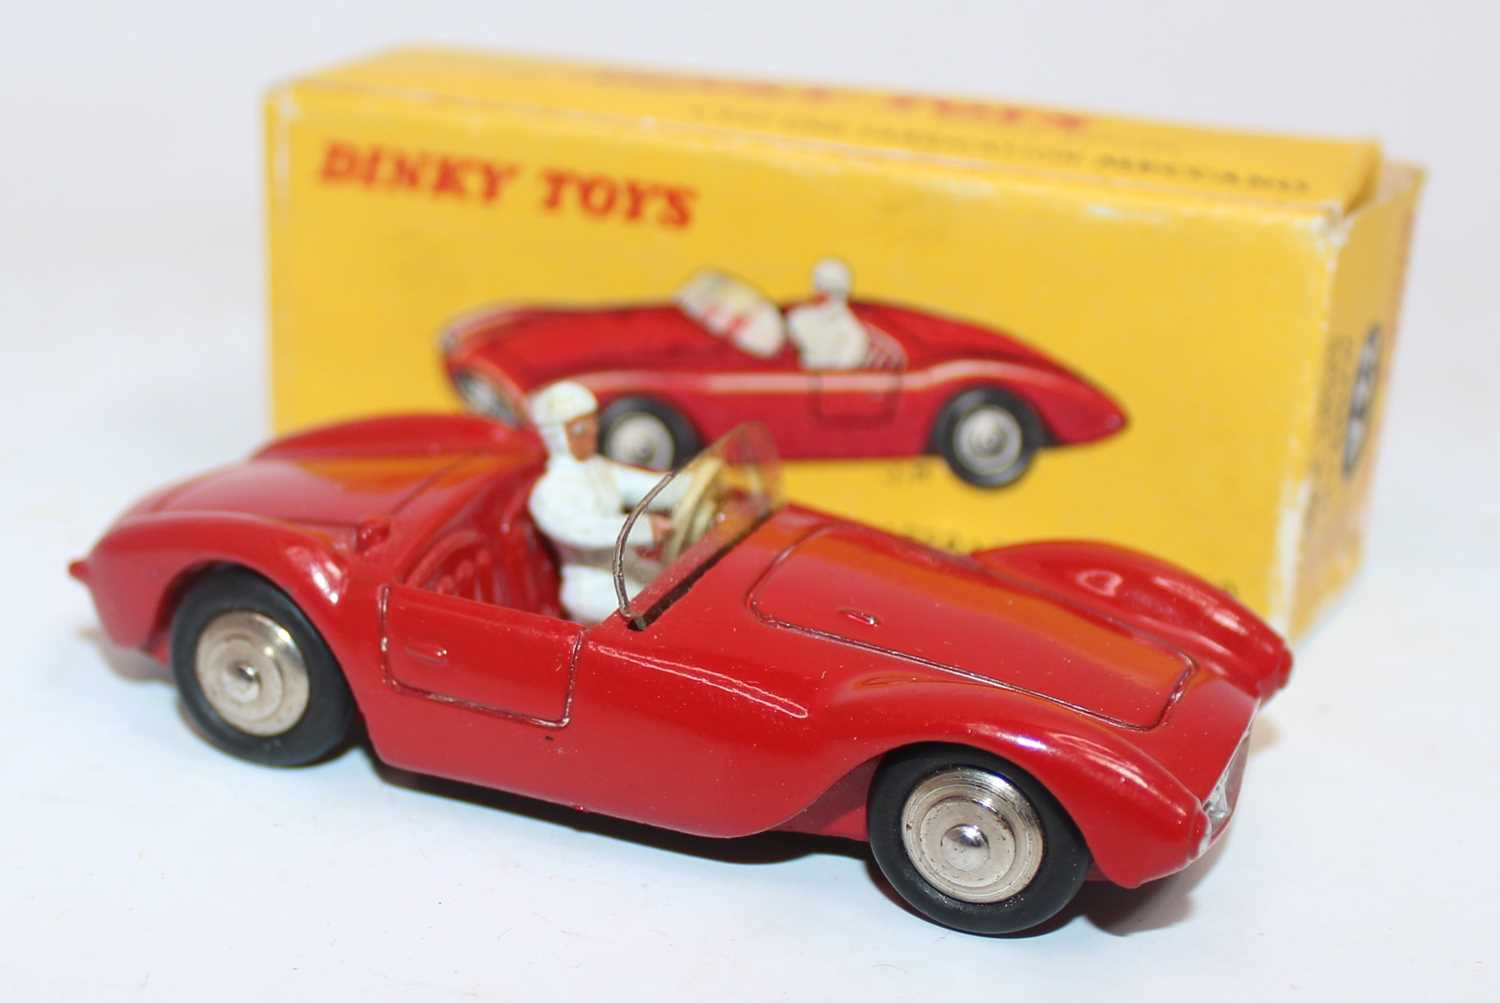 French Dinky Toys No. 22A Maserati Sport 2000 race car comprising of red body with spun hubs and - Image 2 of 2